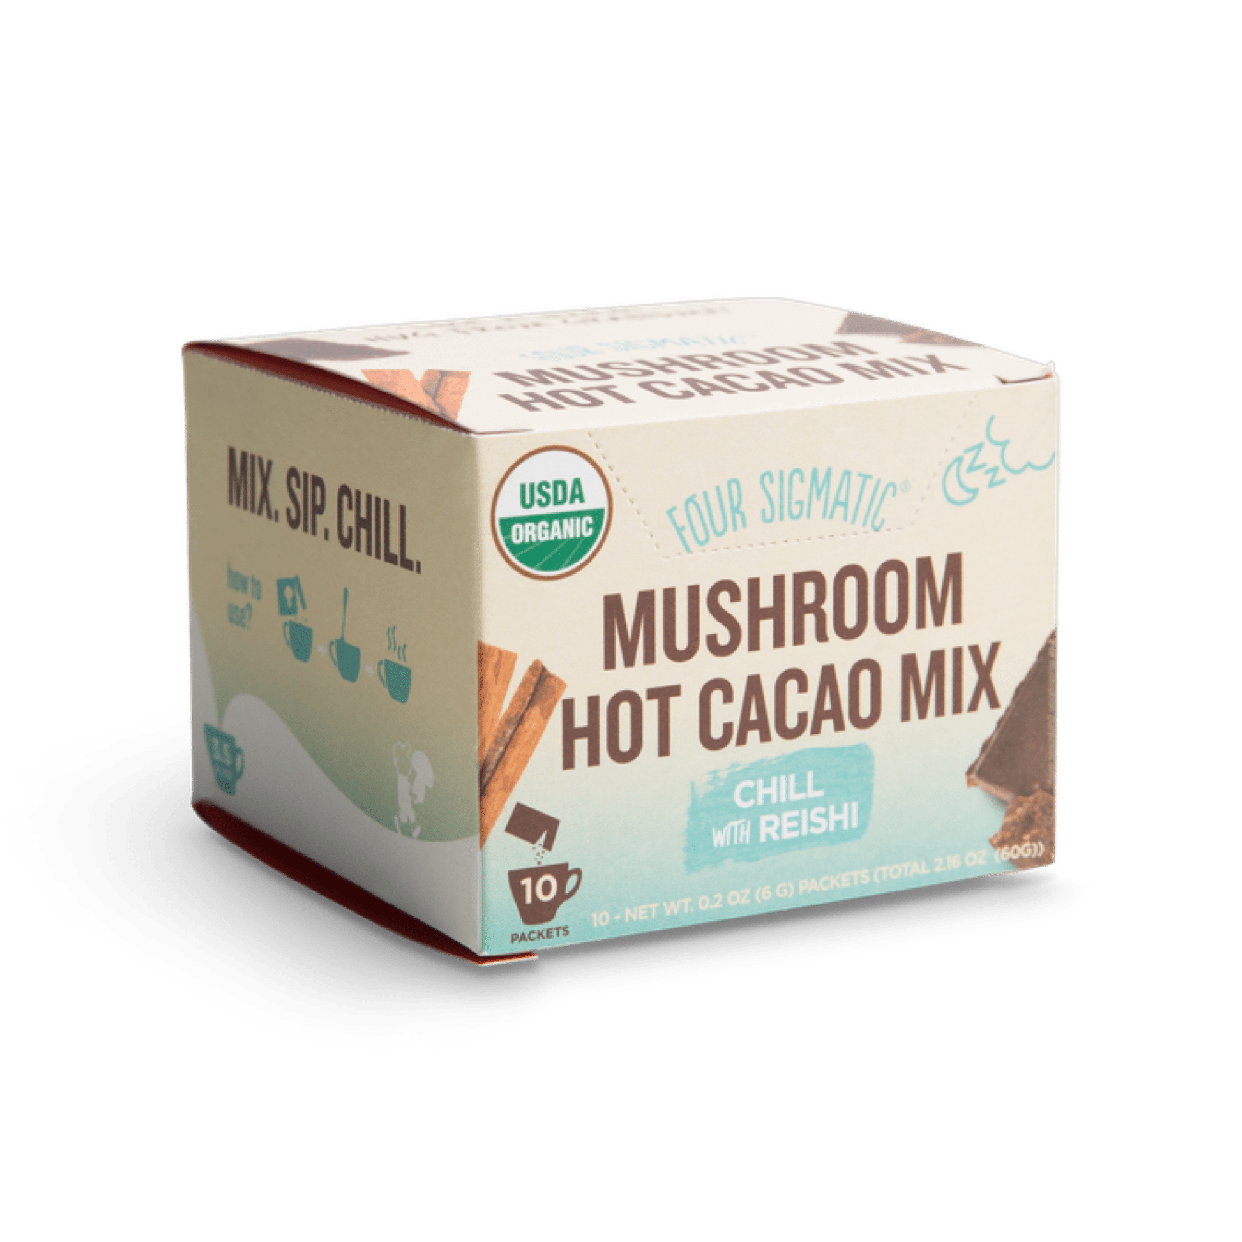 four sigmatic - hot cacao mix with reishi mushroom (box)